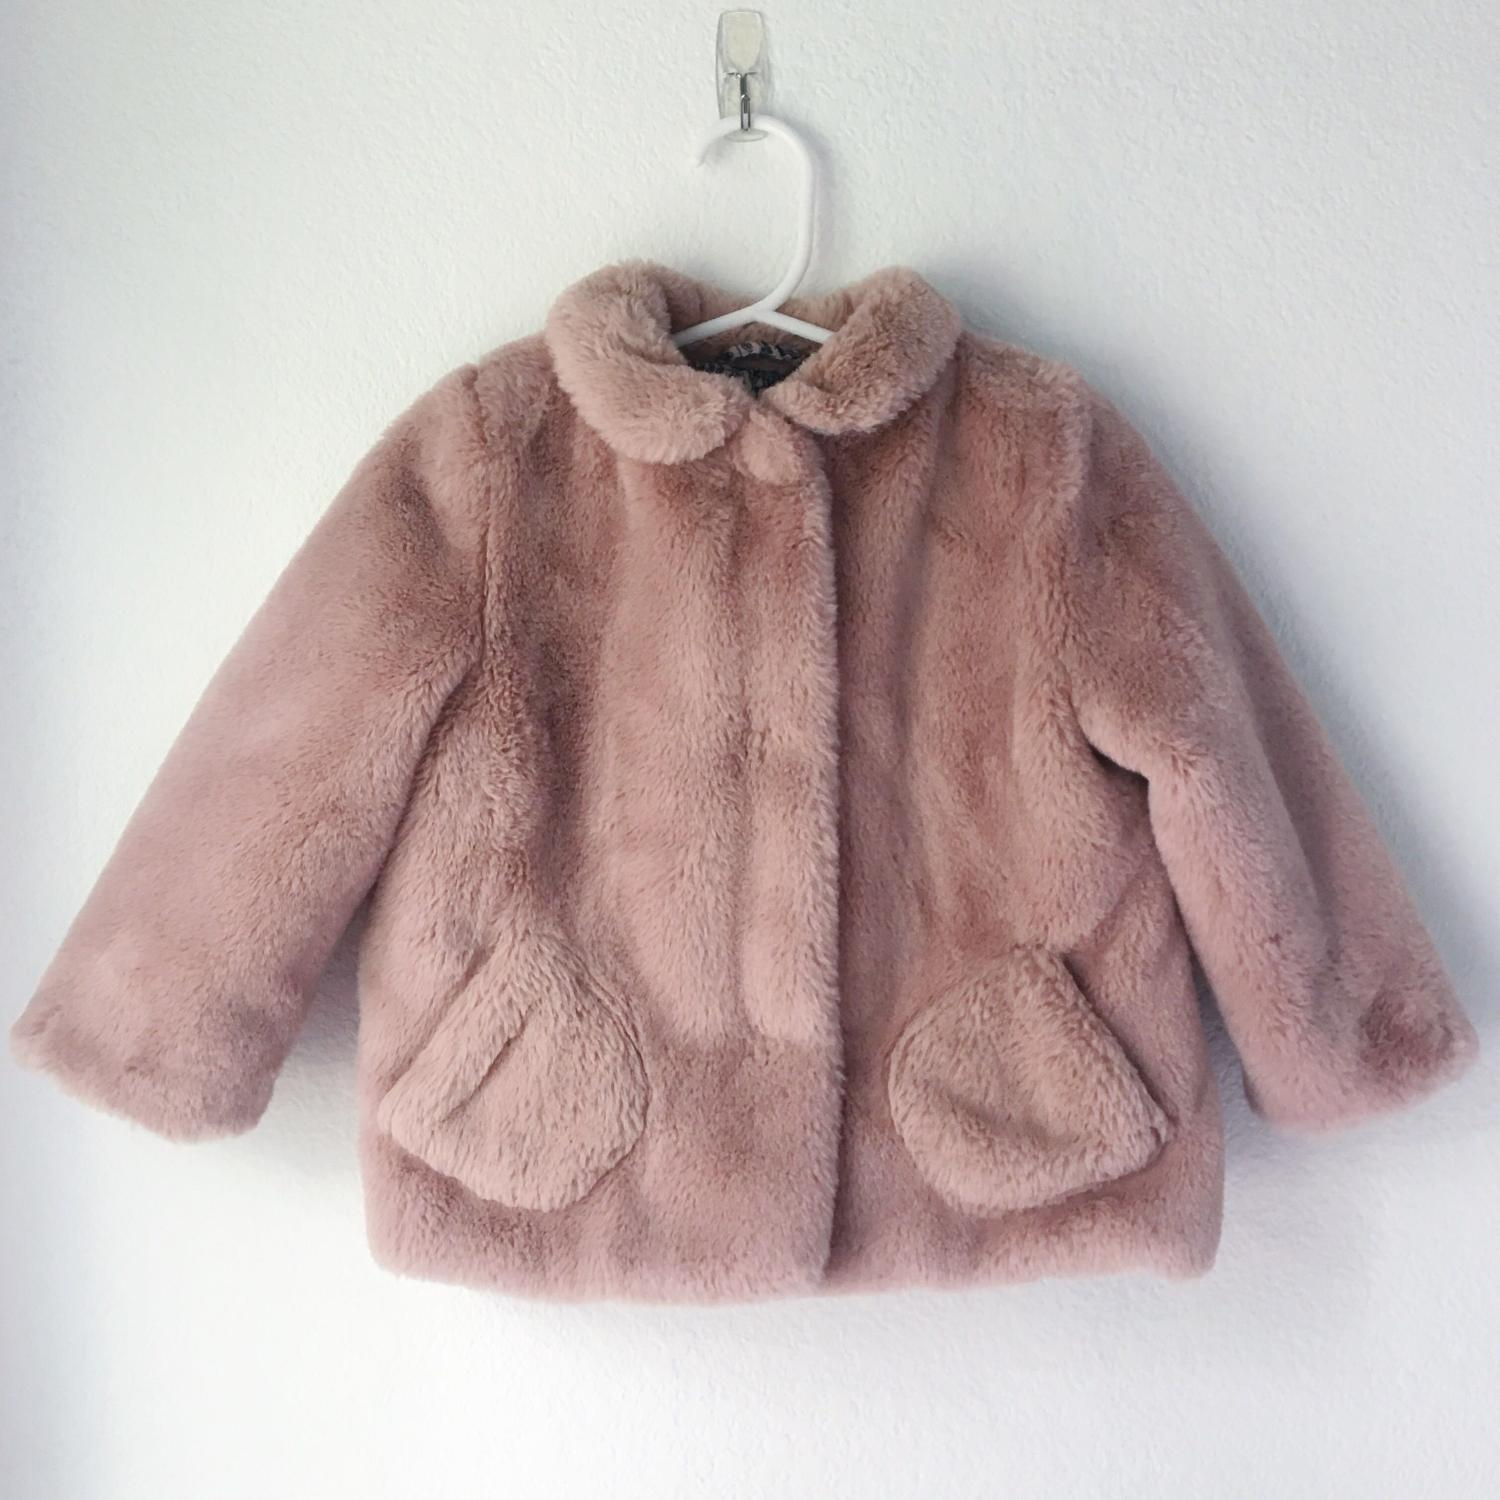 879524bc Best Euc Zara Baby Girl Faux Fur Pink Collar Coat Jacket 18-24m for ...